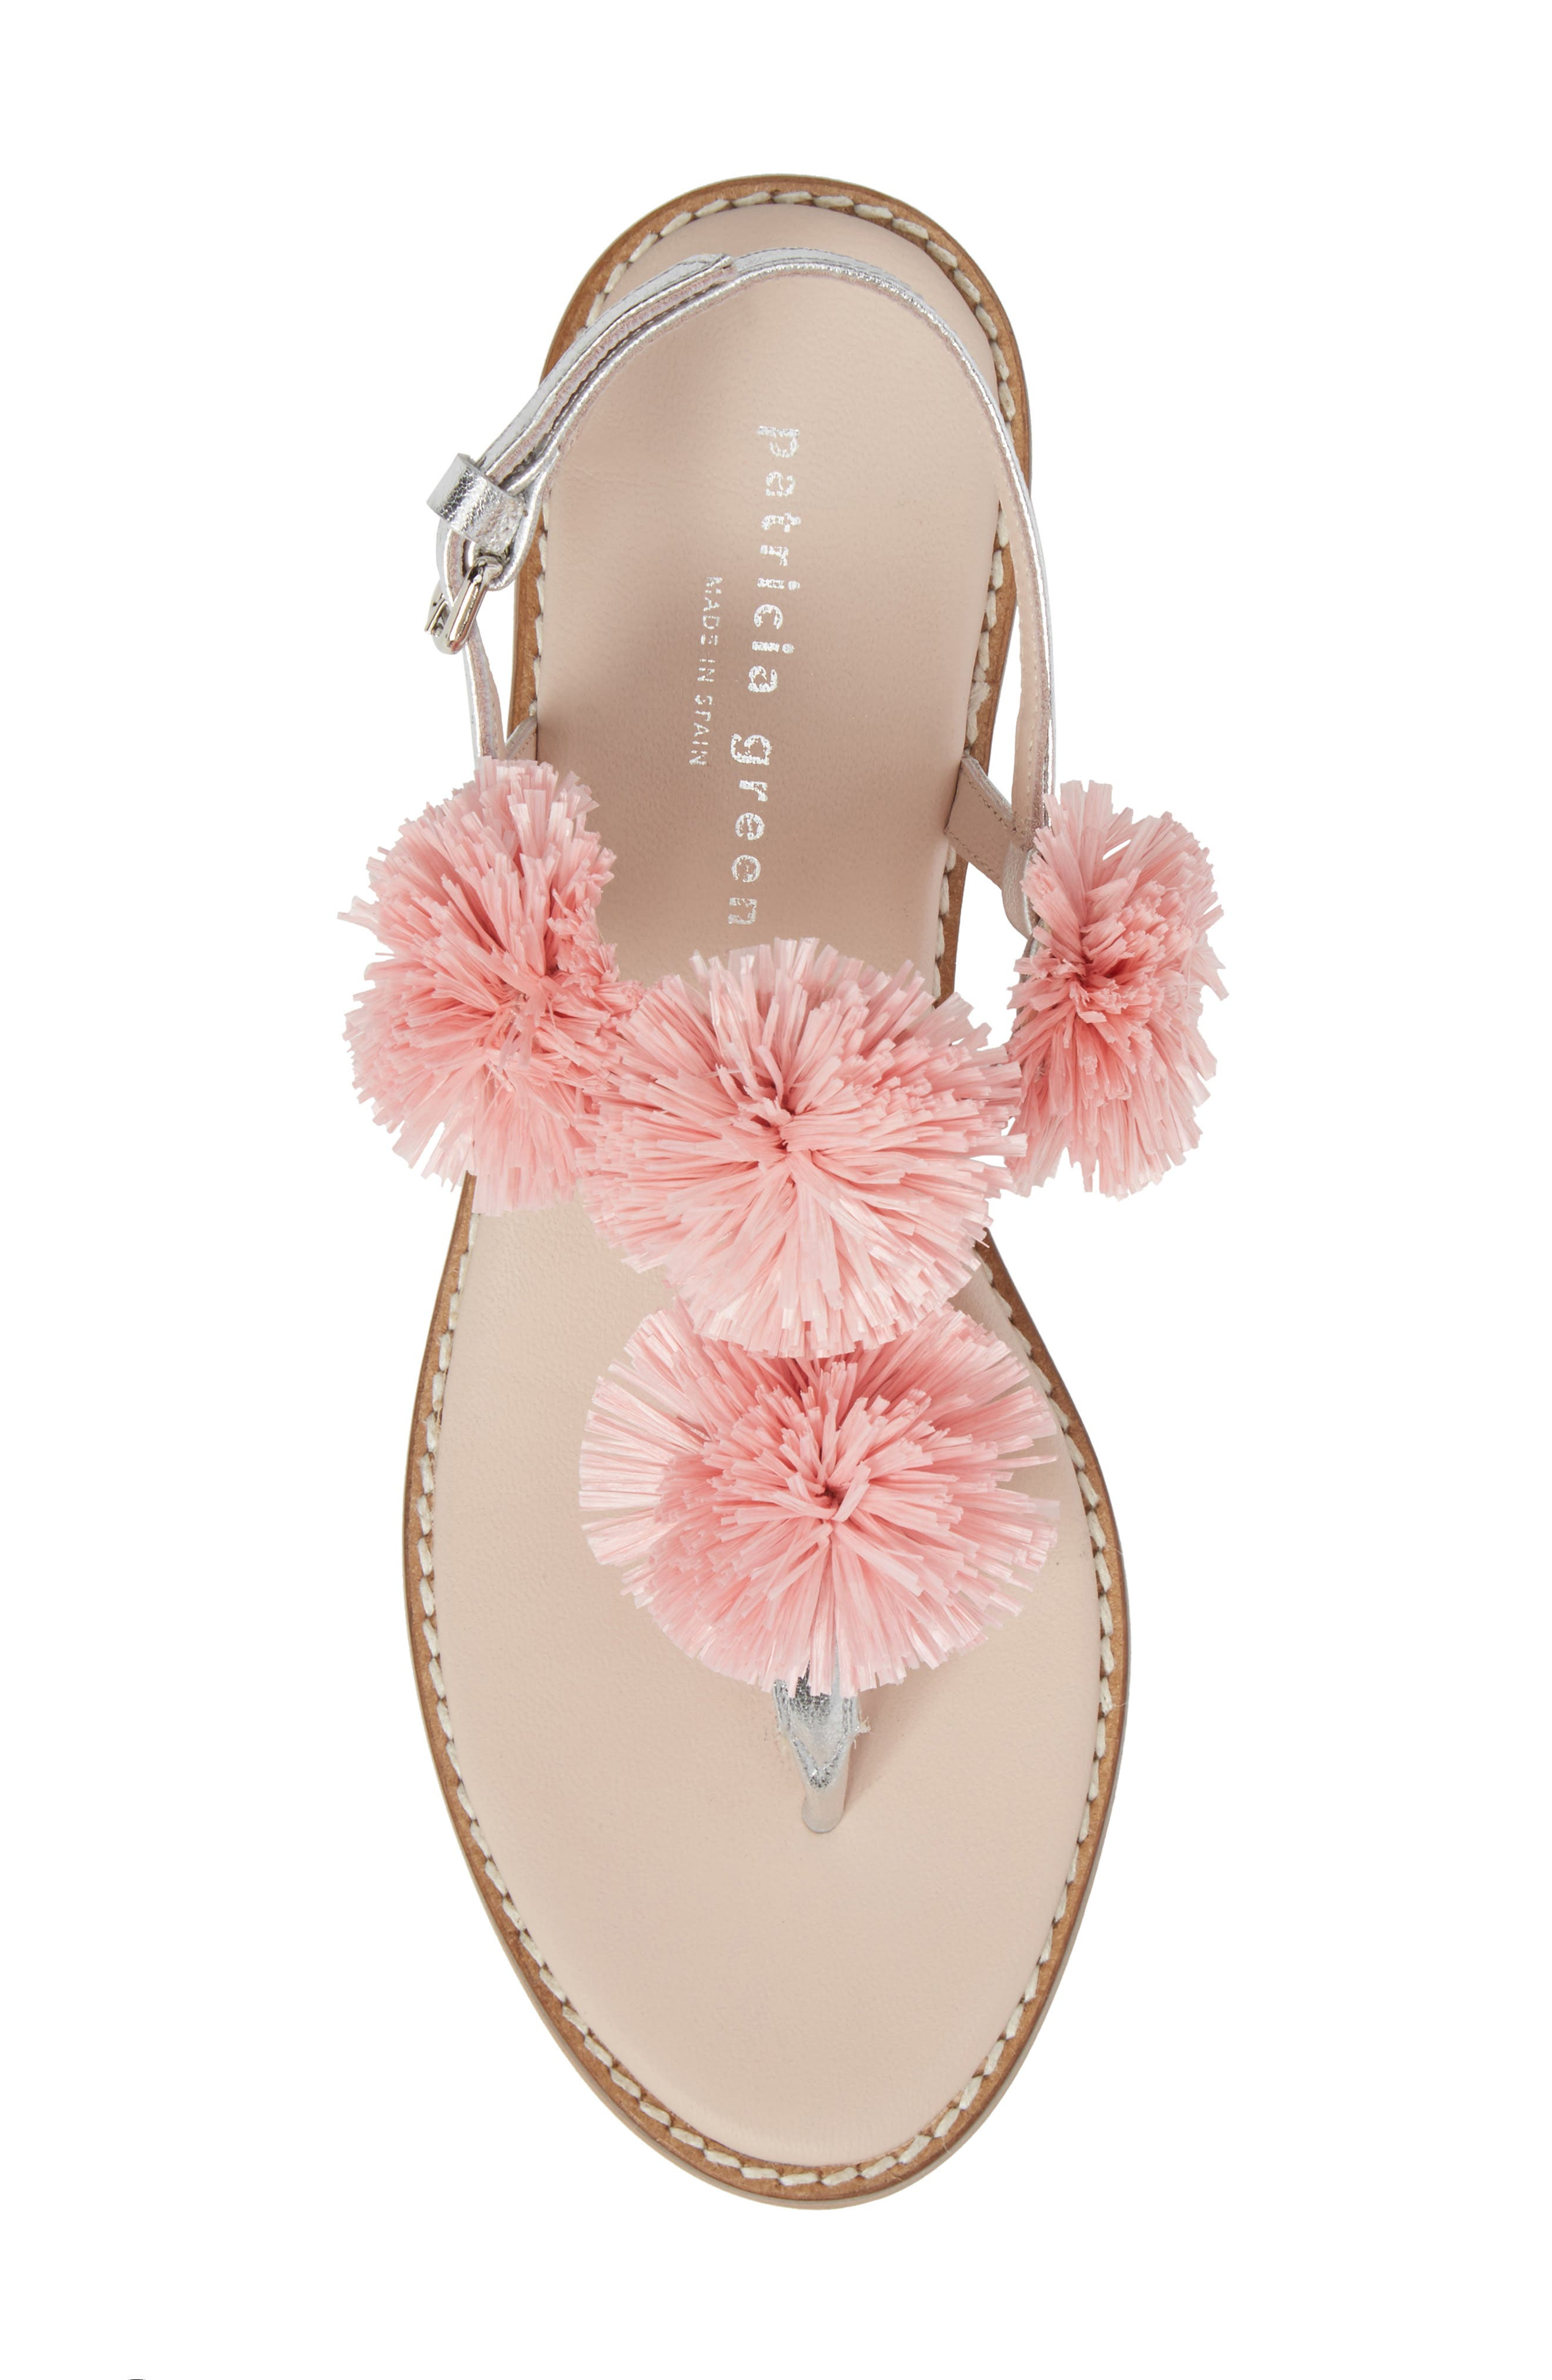 Pompom Thong Sandal,                             Alternate thumbnail 5, color,                             PINK LEATHER